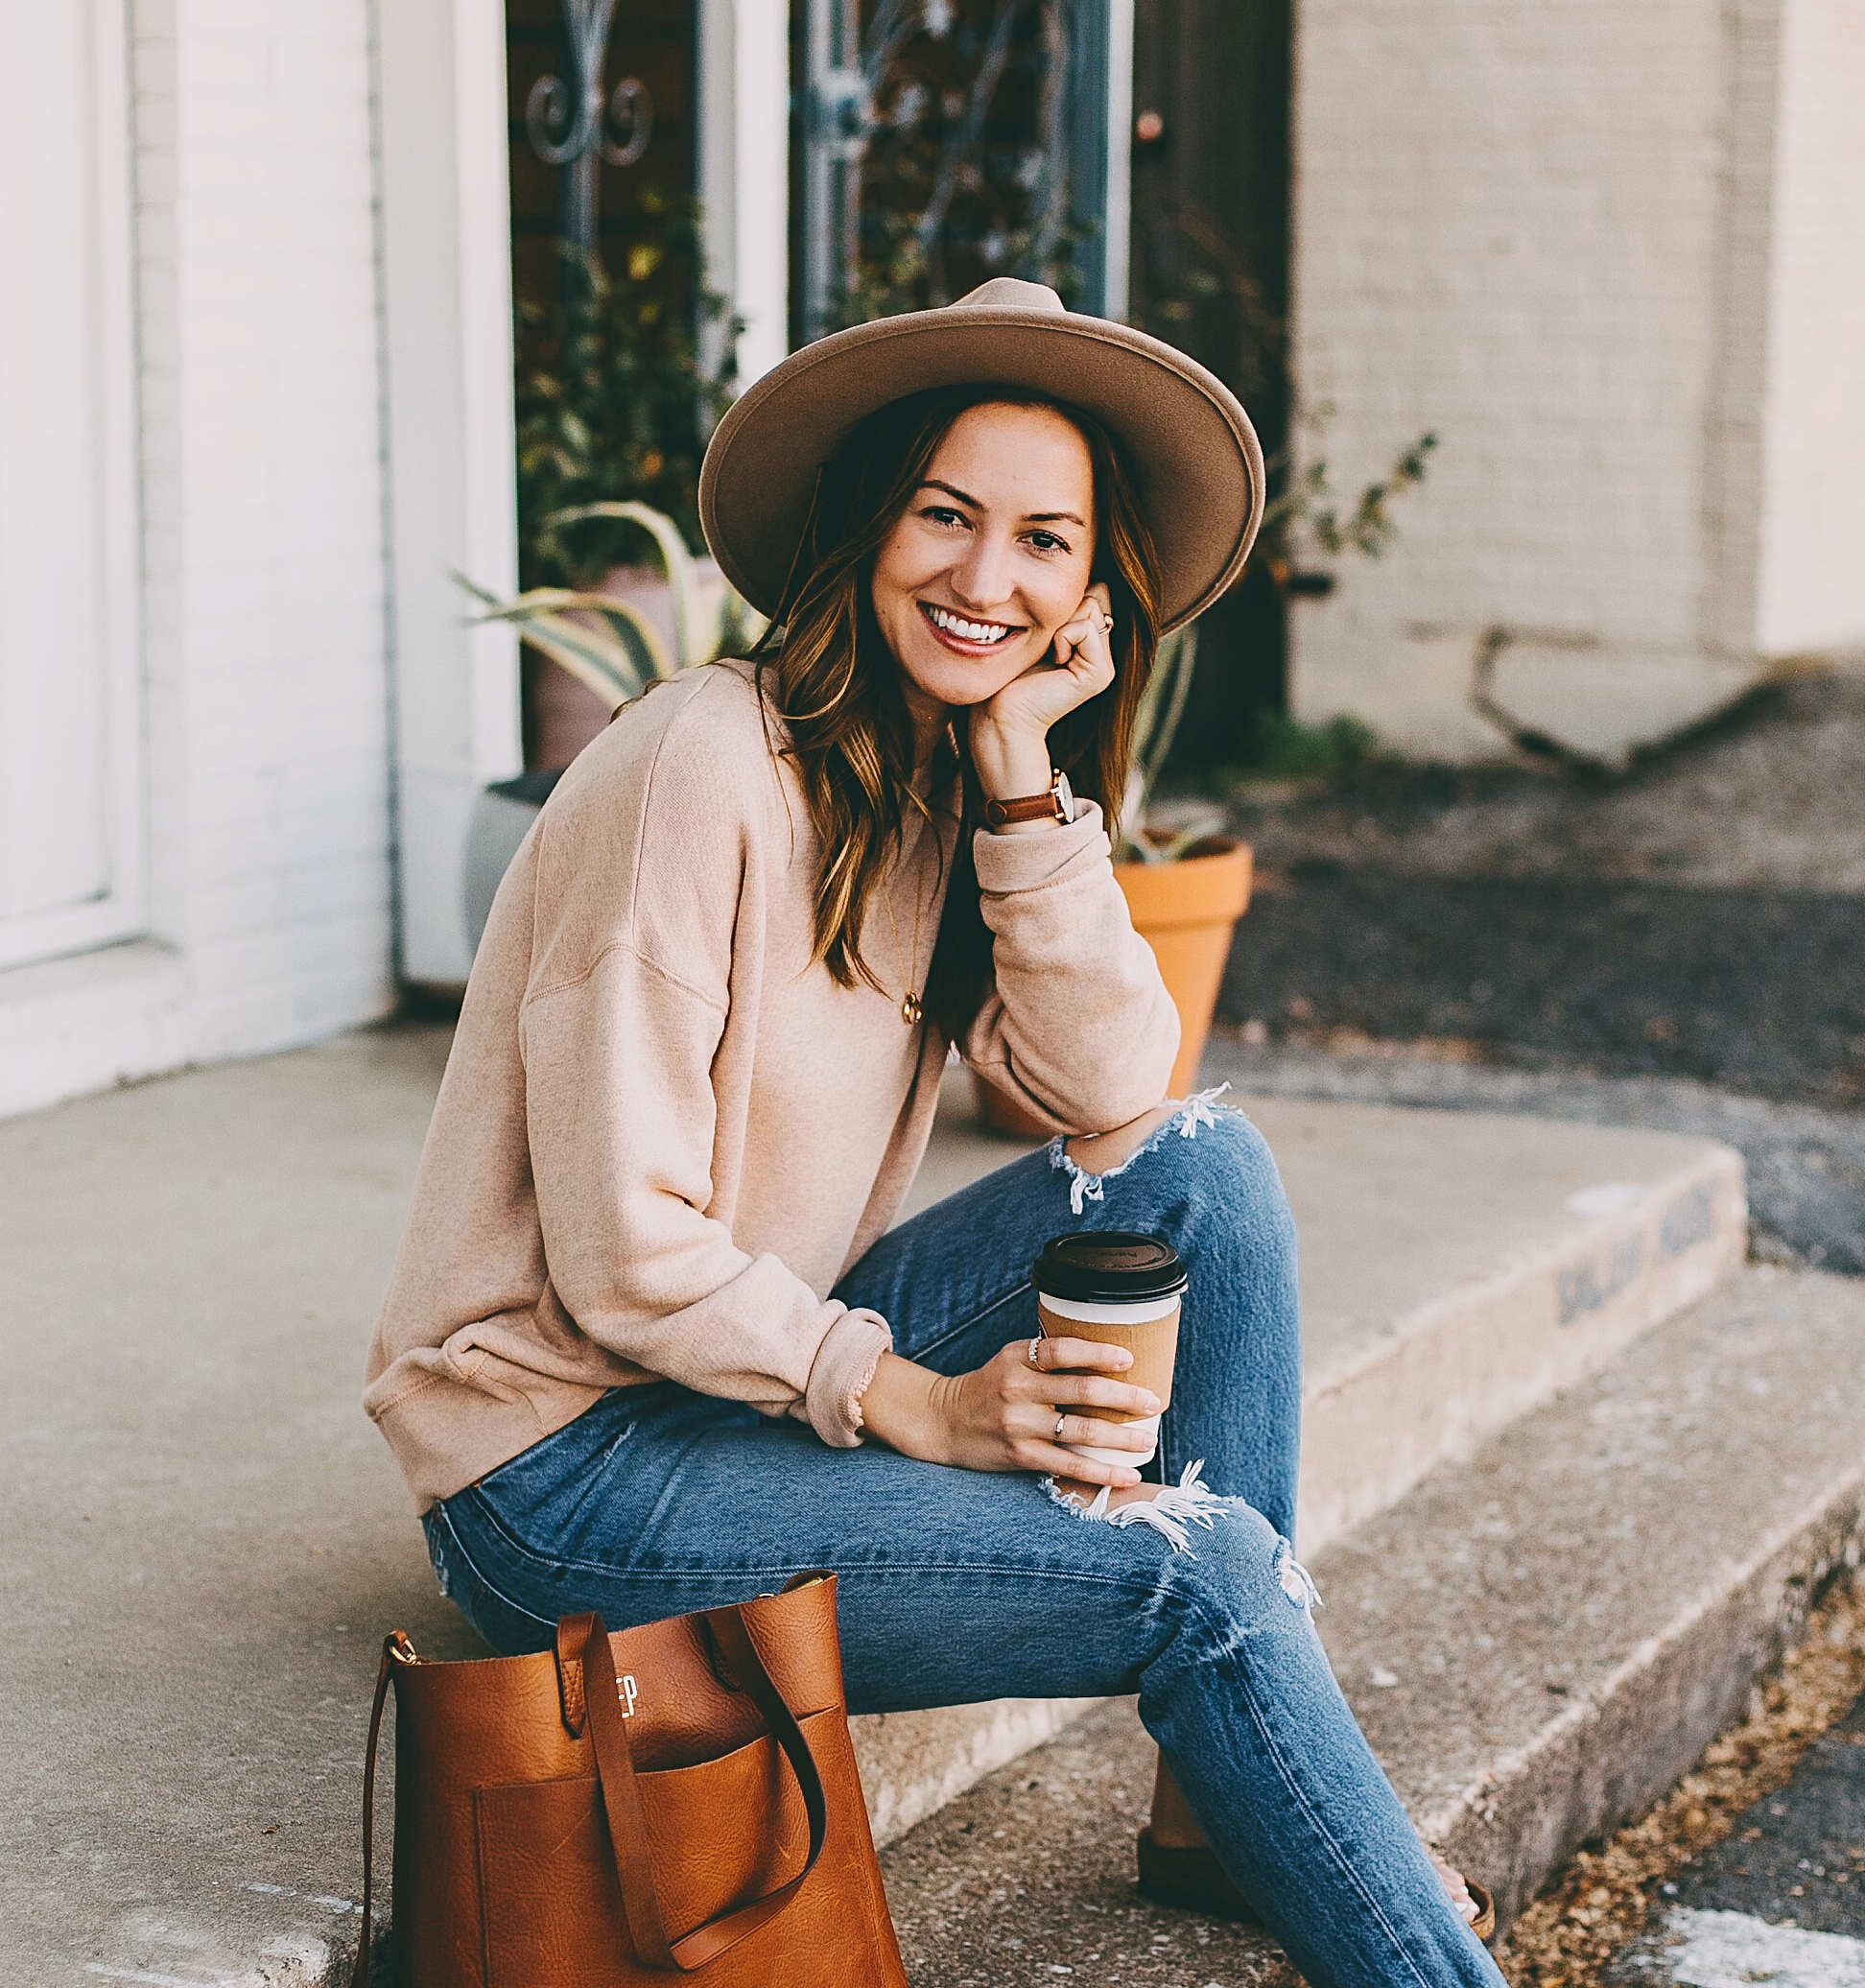 Walk To Work Day - LivvyLand | Austin Fashion and Style Blogger